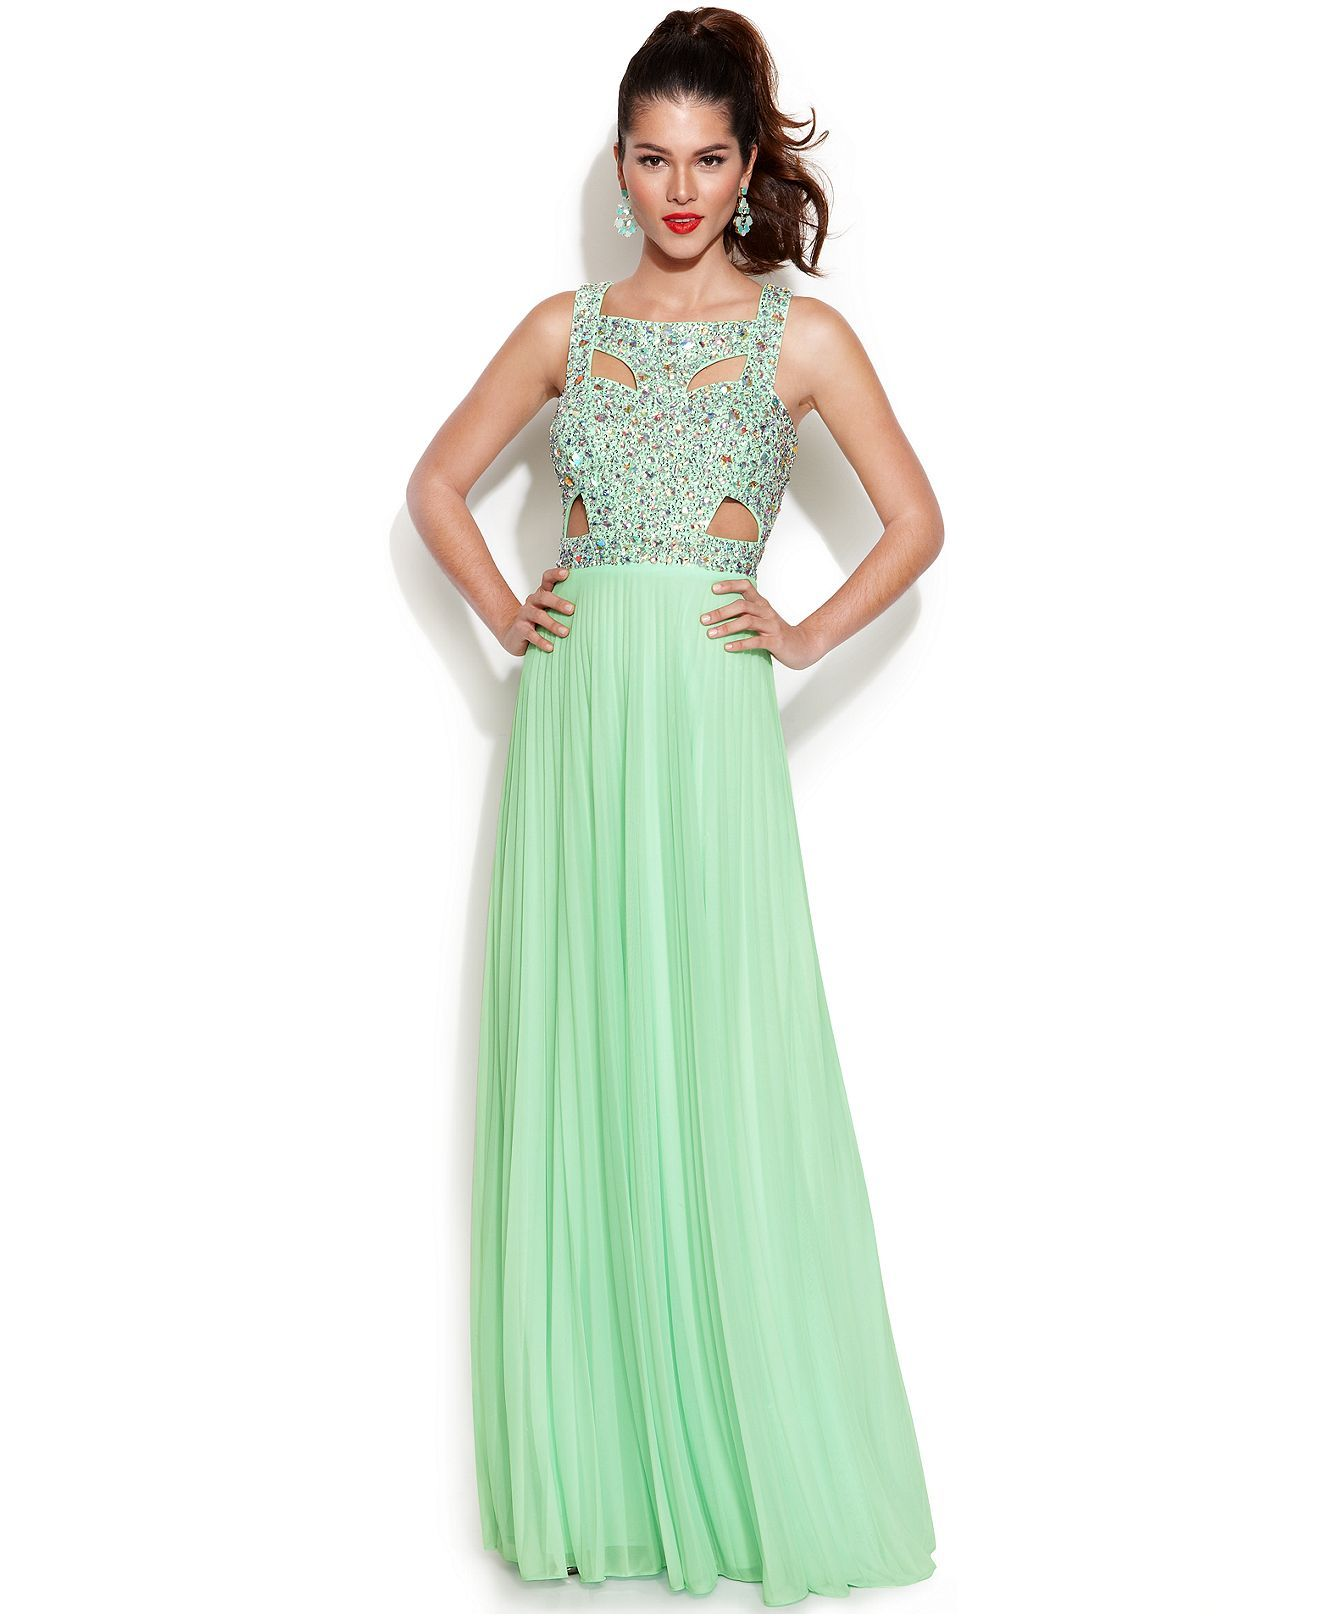 Betsy Adam Sleeveless Embellished Cutout Gown Juniors Prom